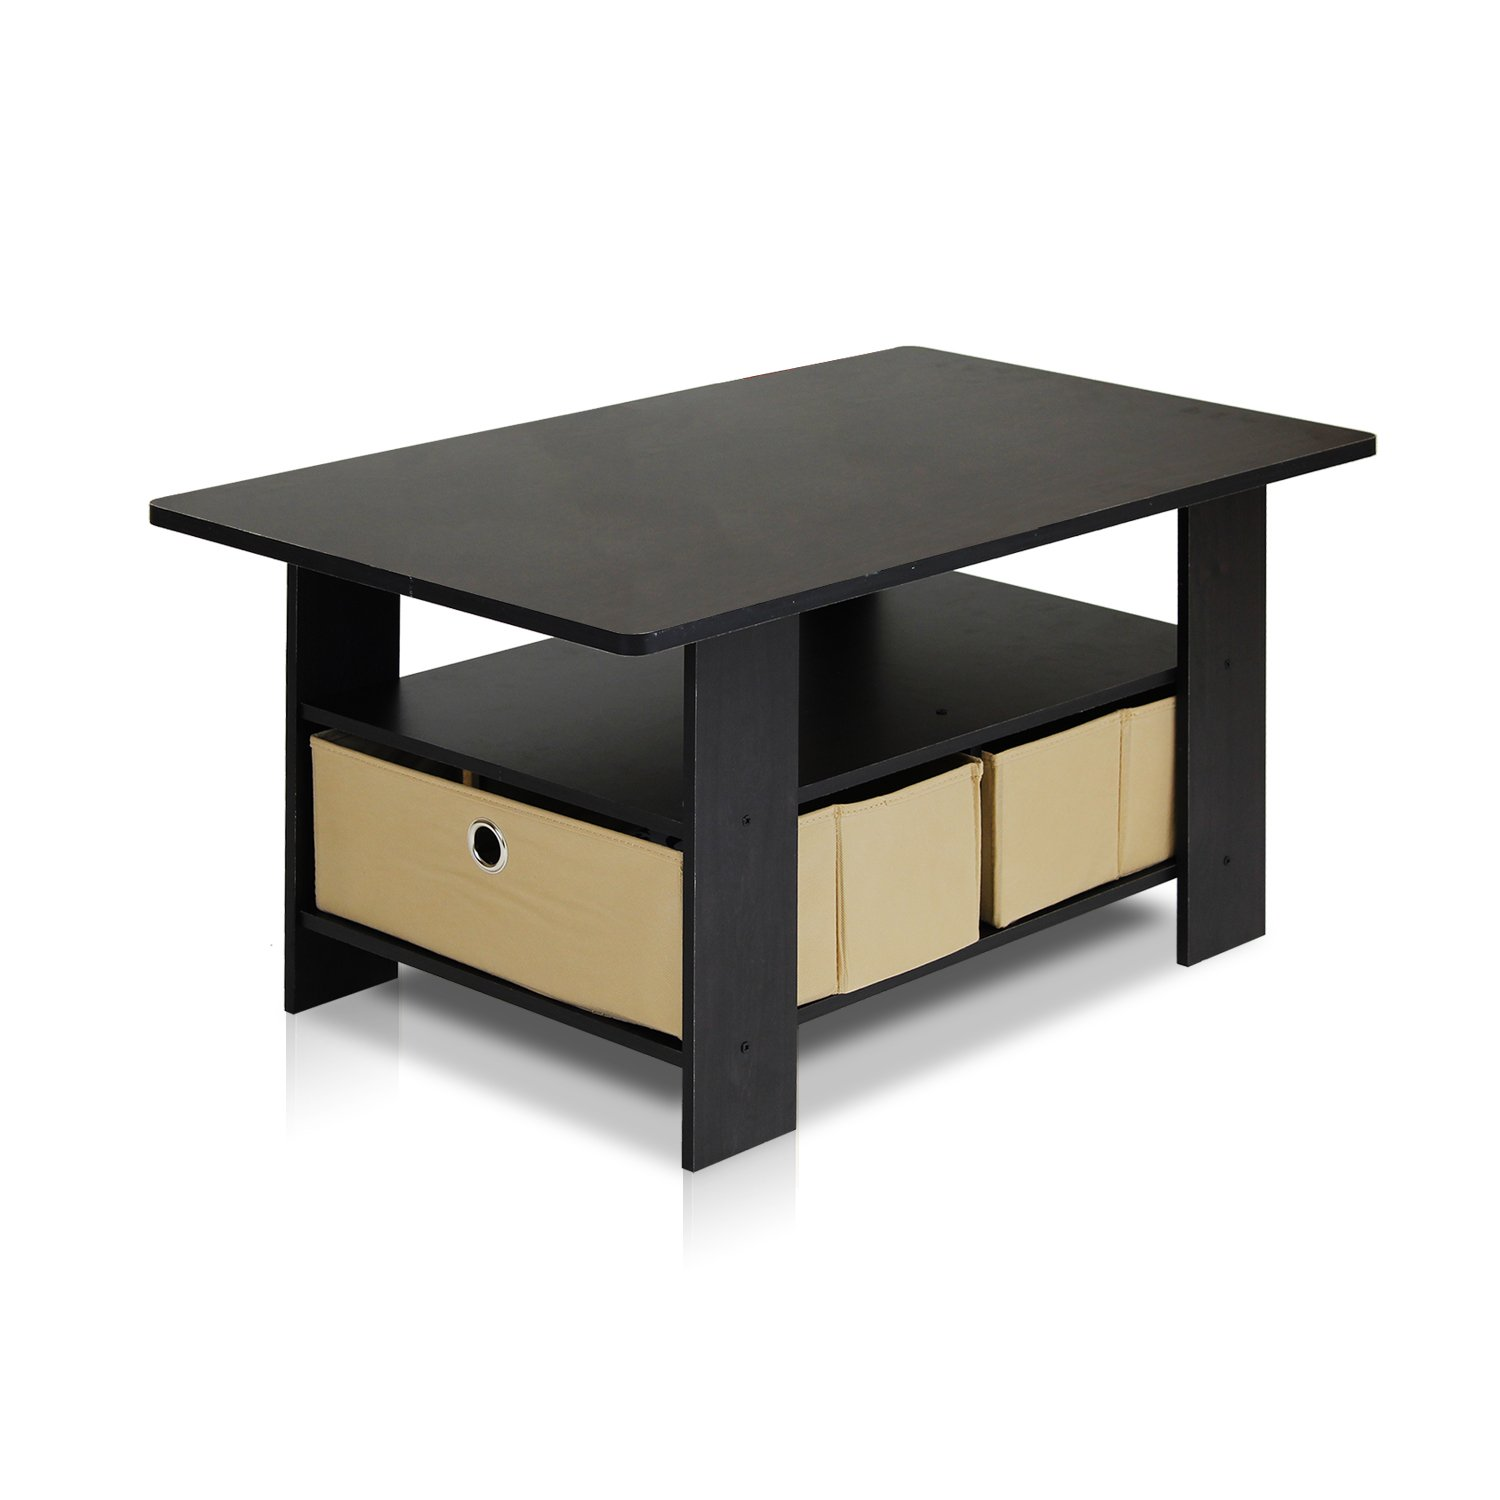 Small coffee table living room furniture dorm desk home for Living coffee table